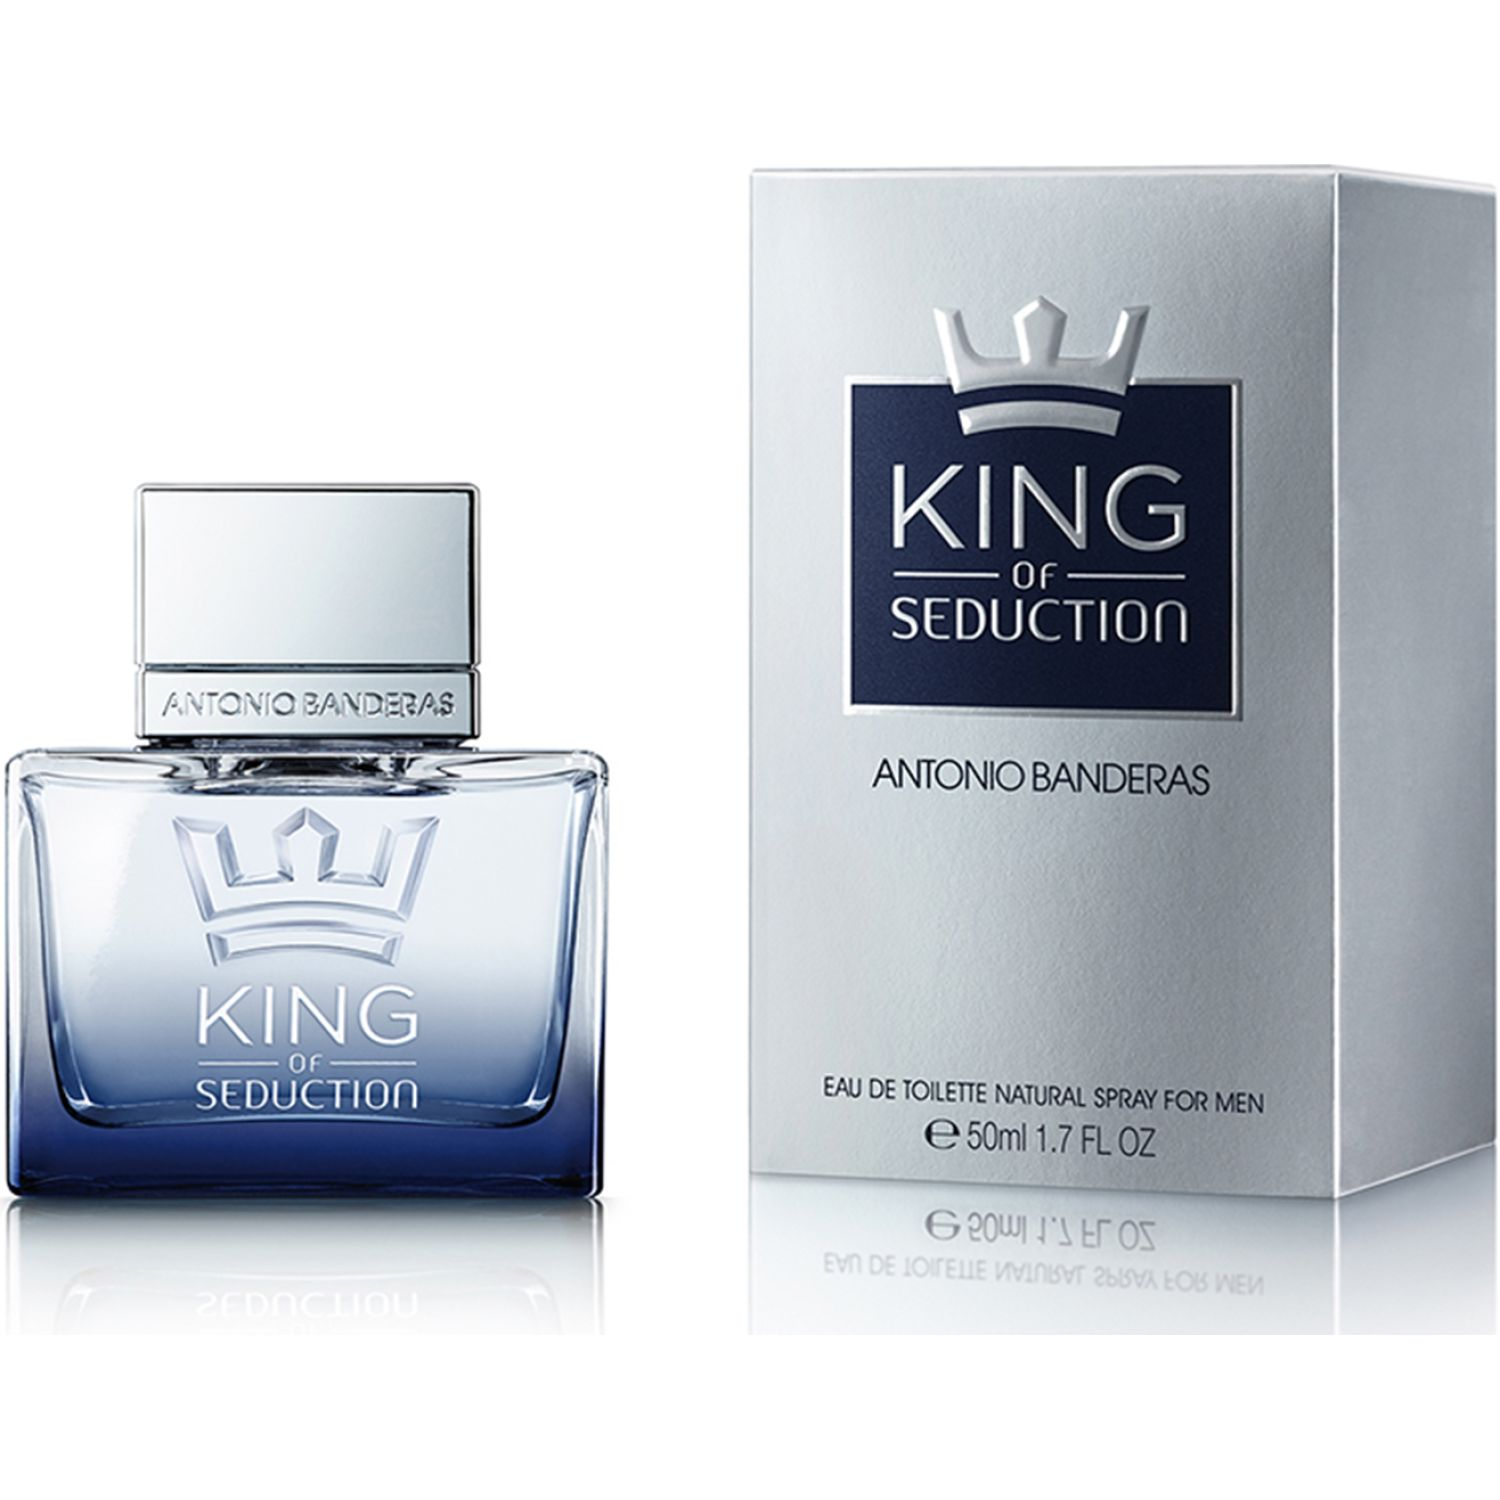 ANTONIO BANDERAS king of sed edt 50ml Varios Agua de perfume